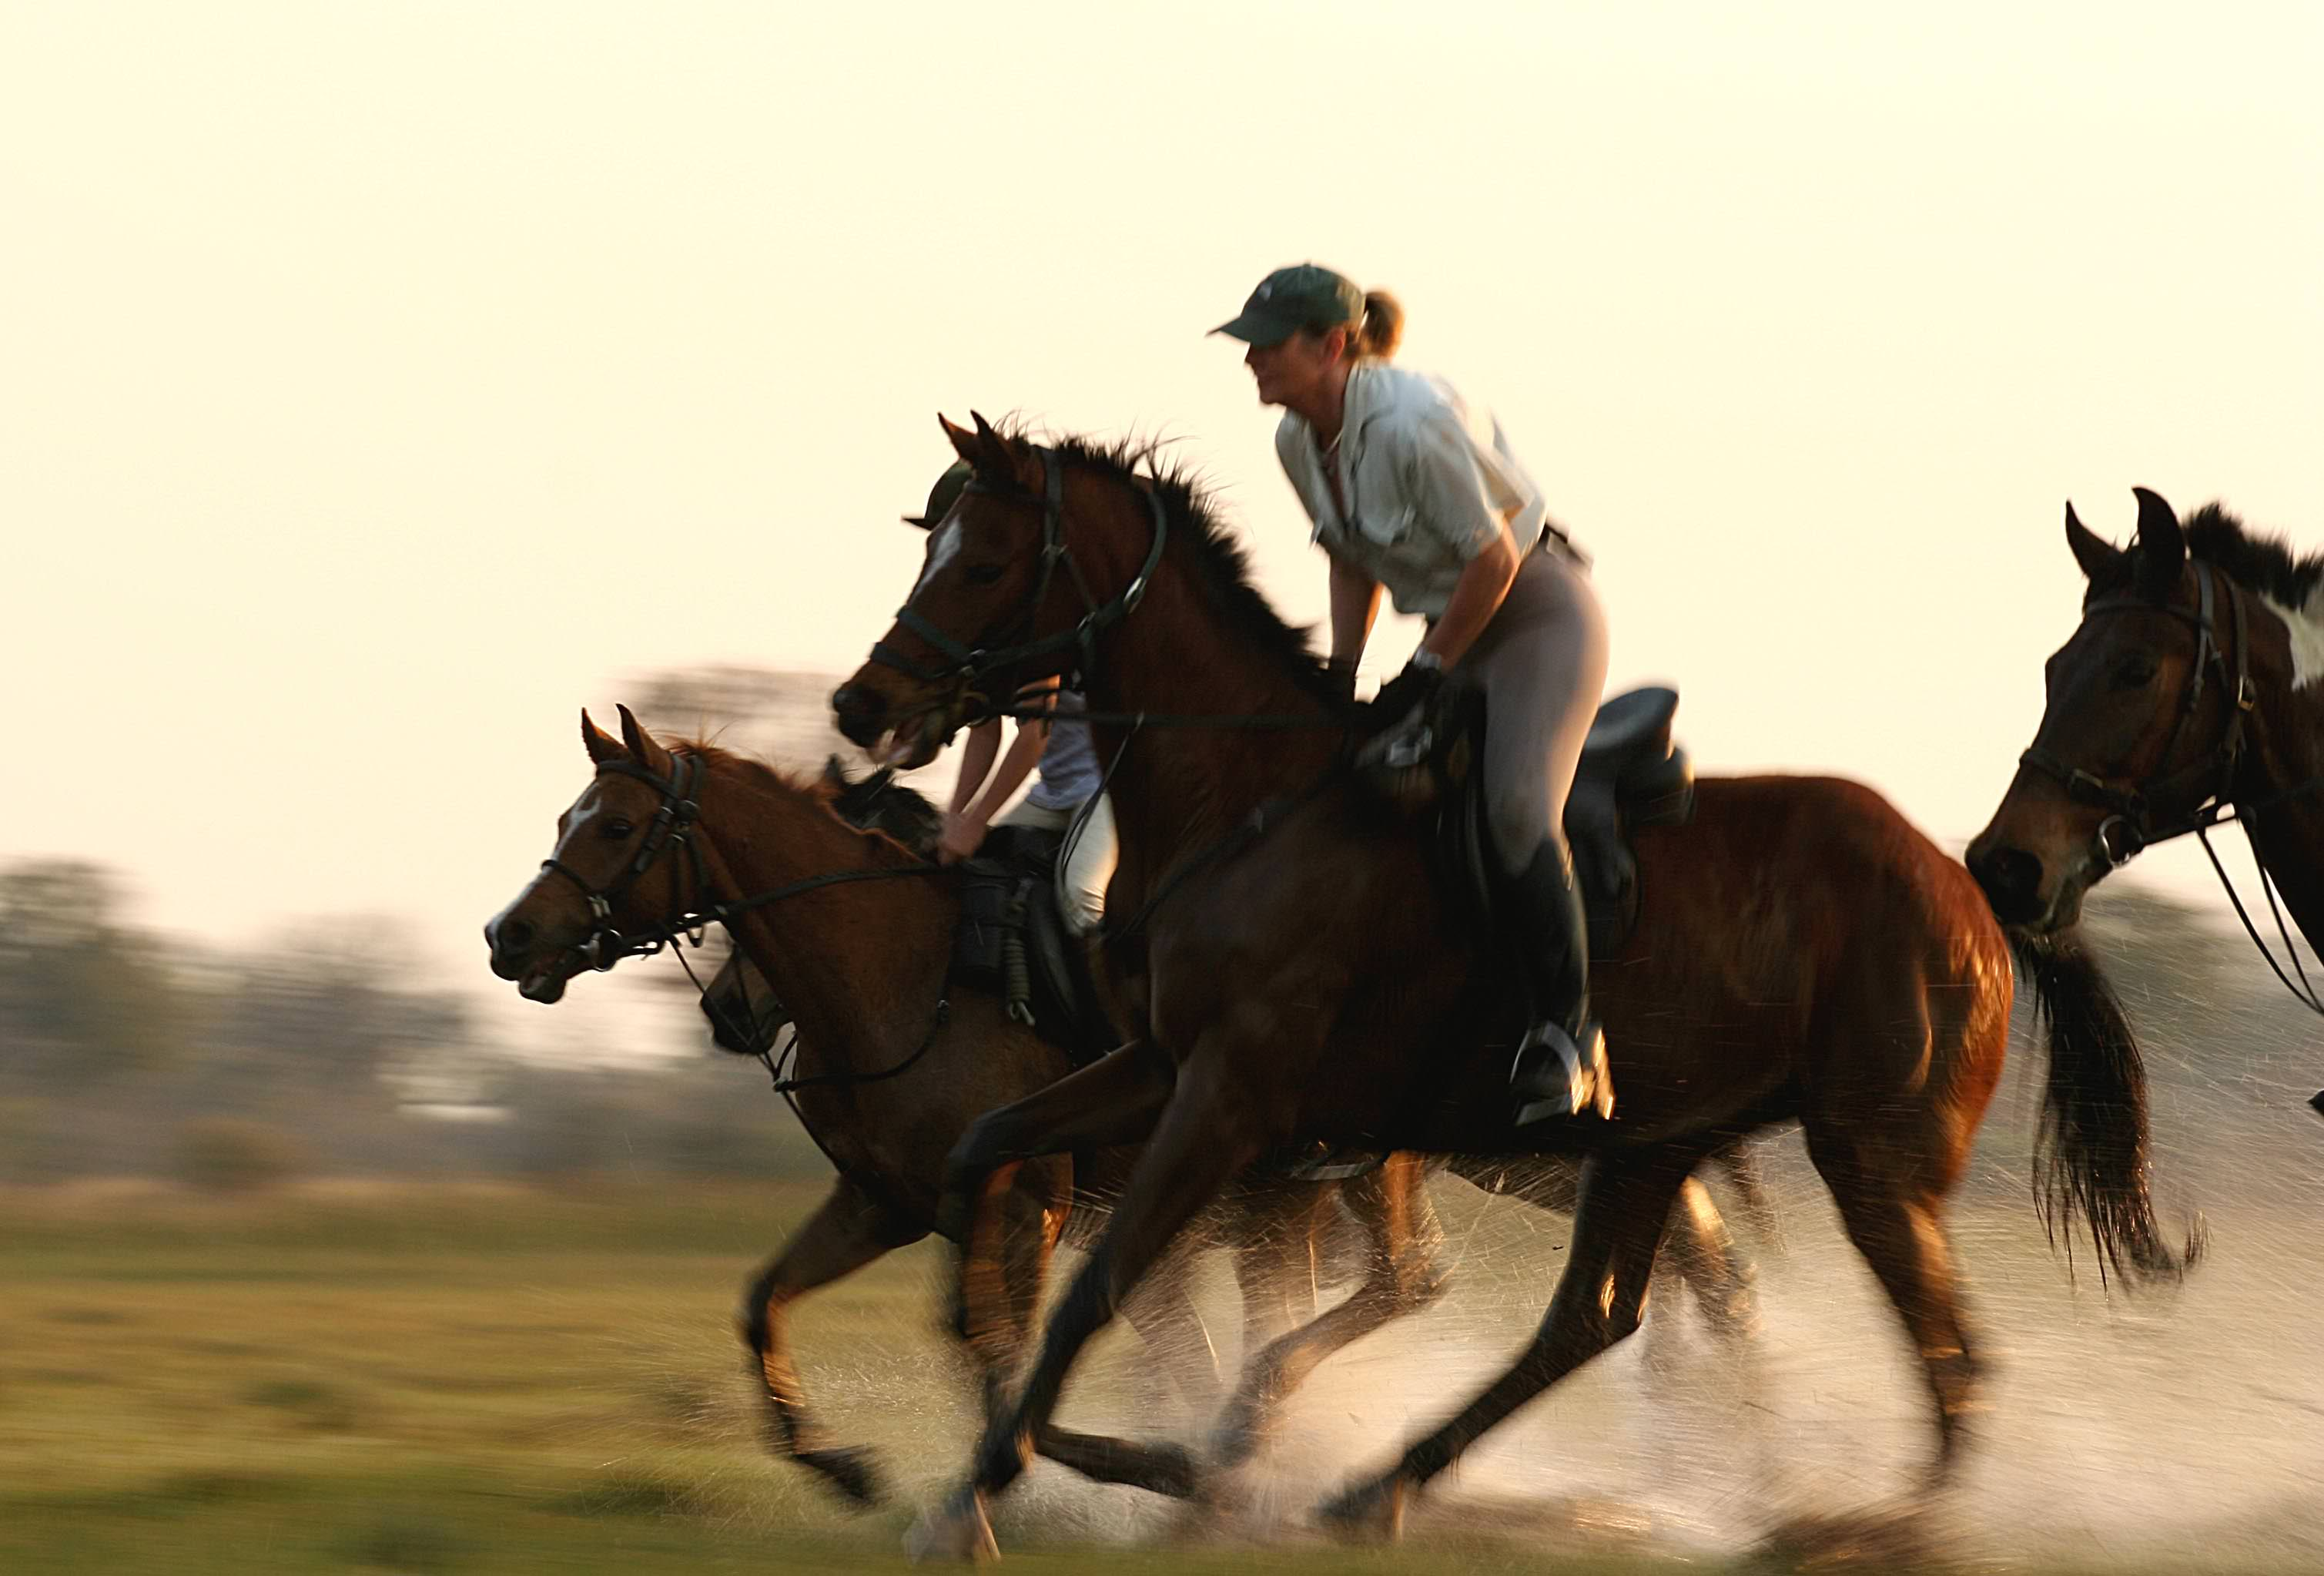 Exhilarating canters across the plains